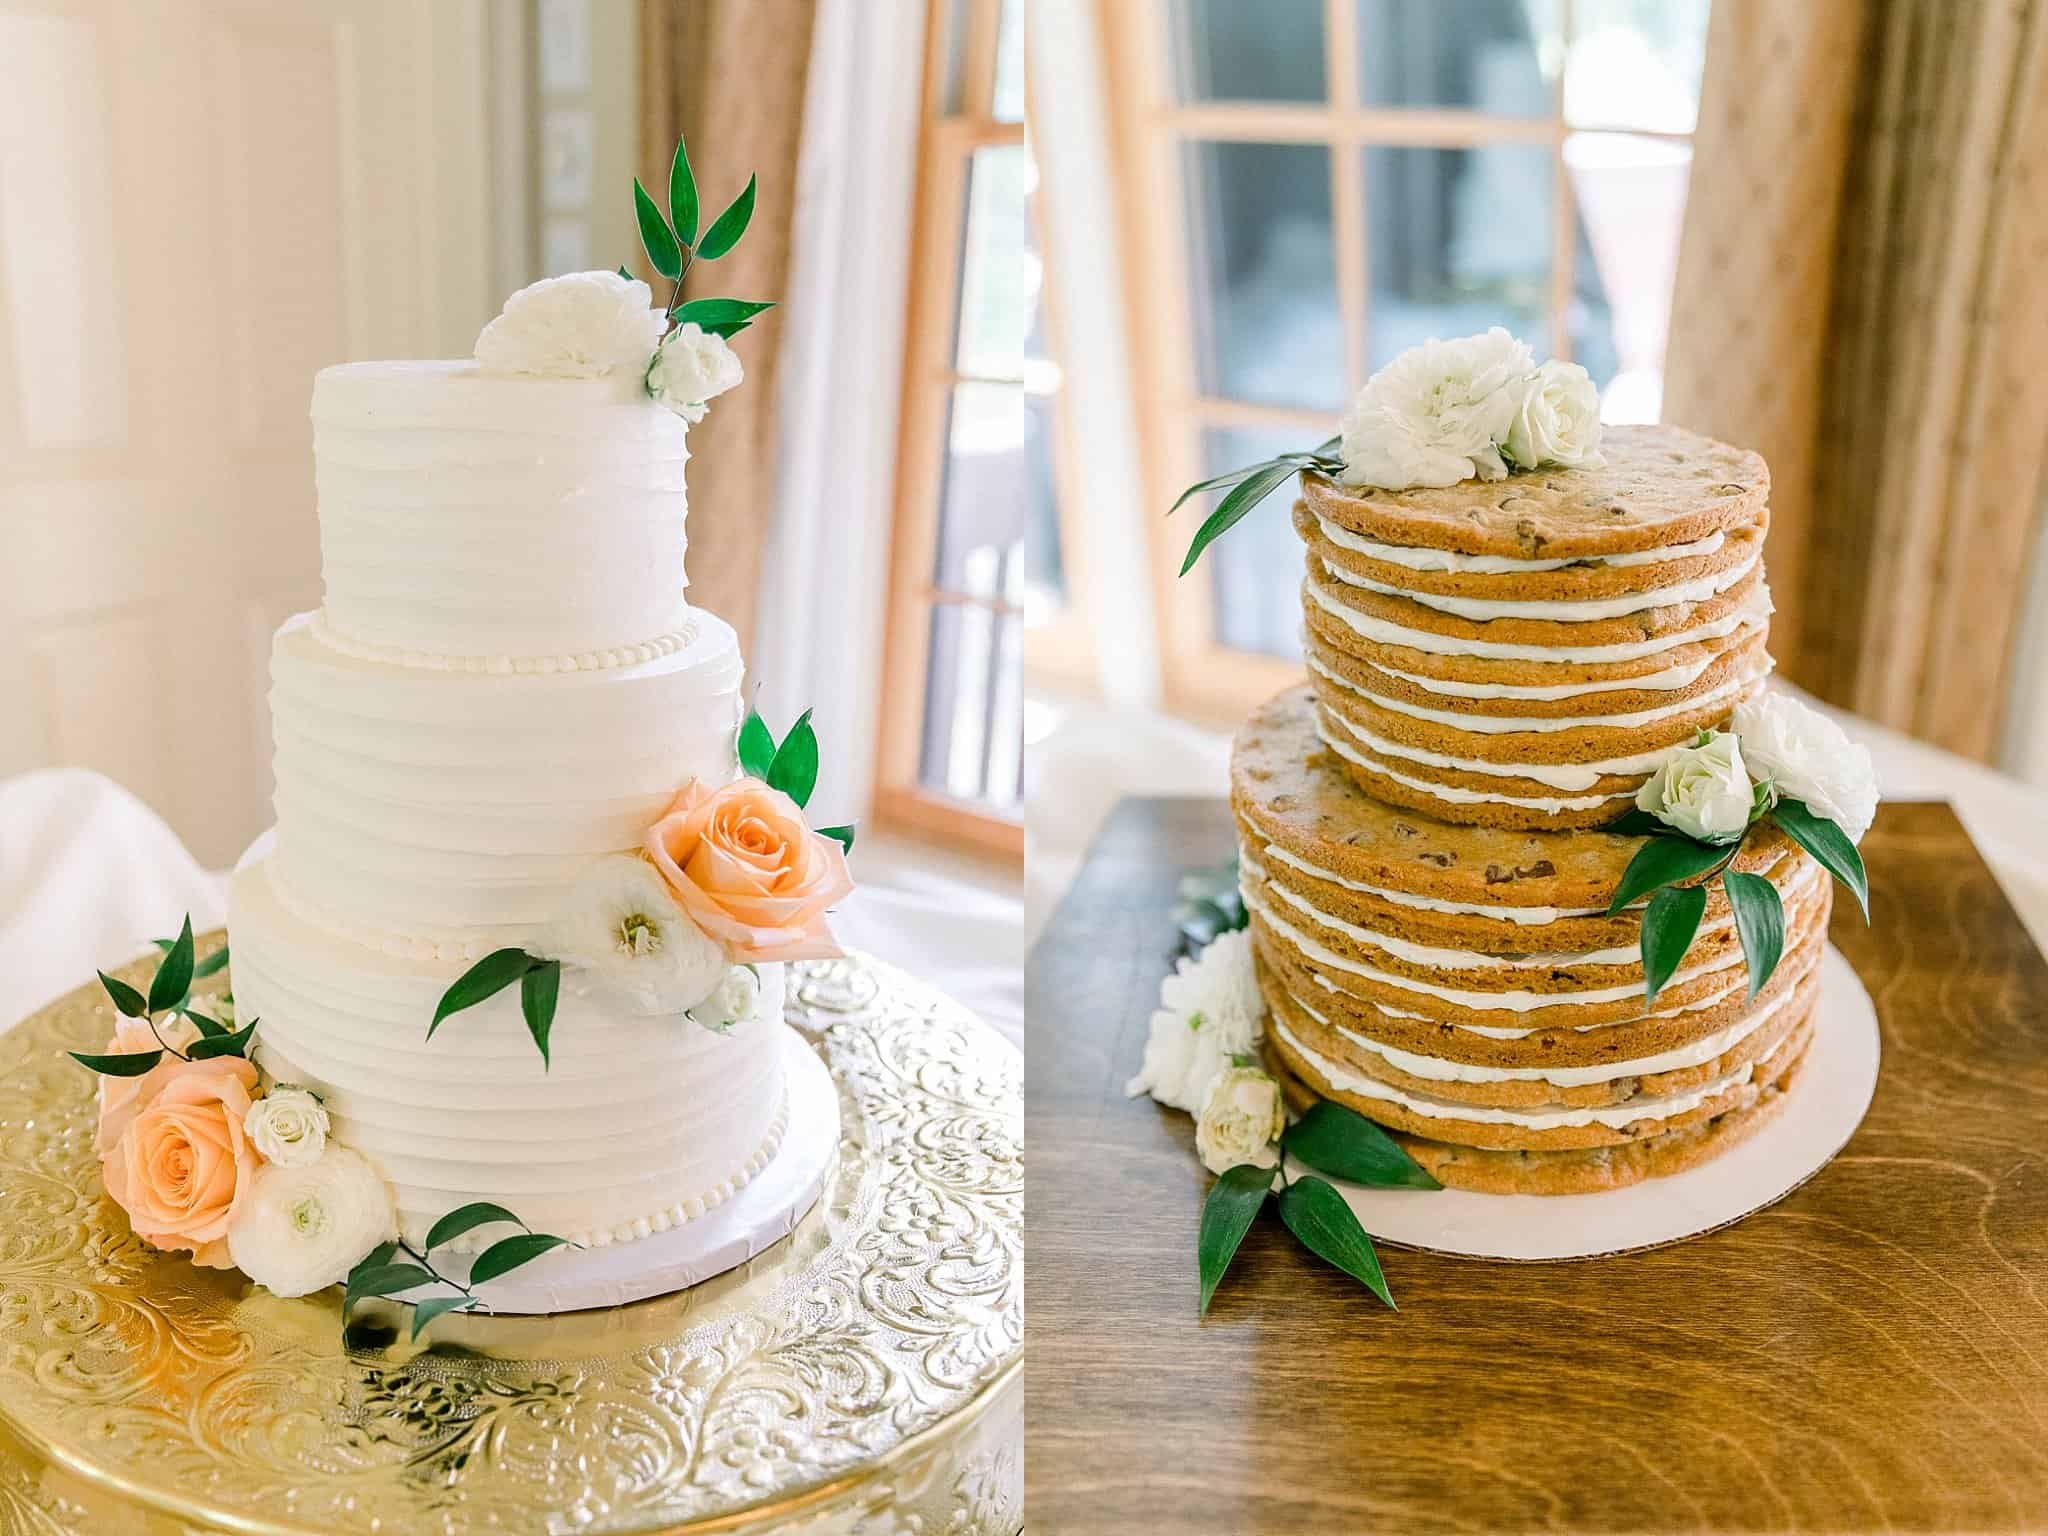 Wedding cake and stacked cookie cake